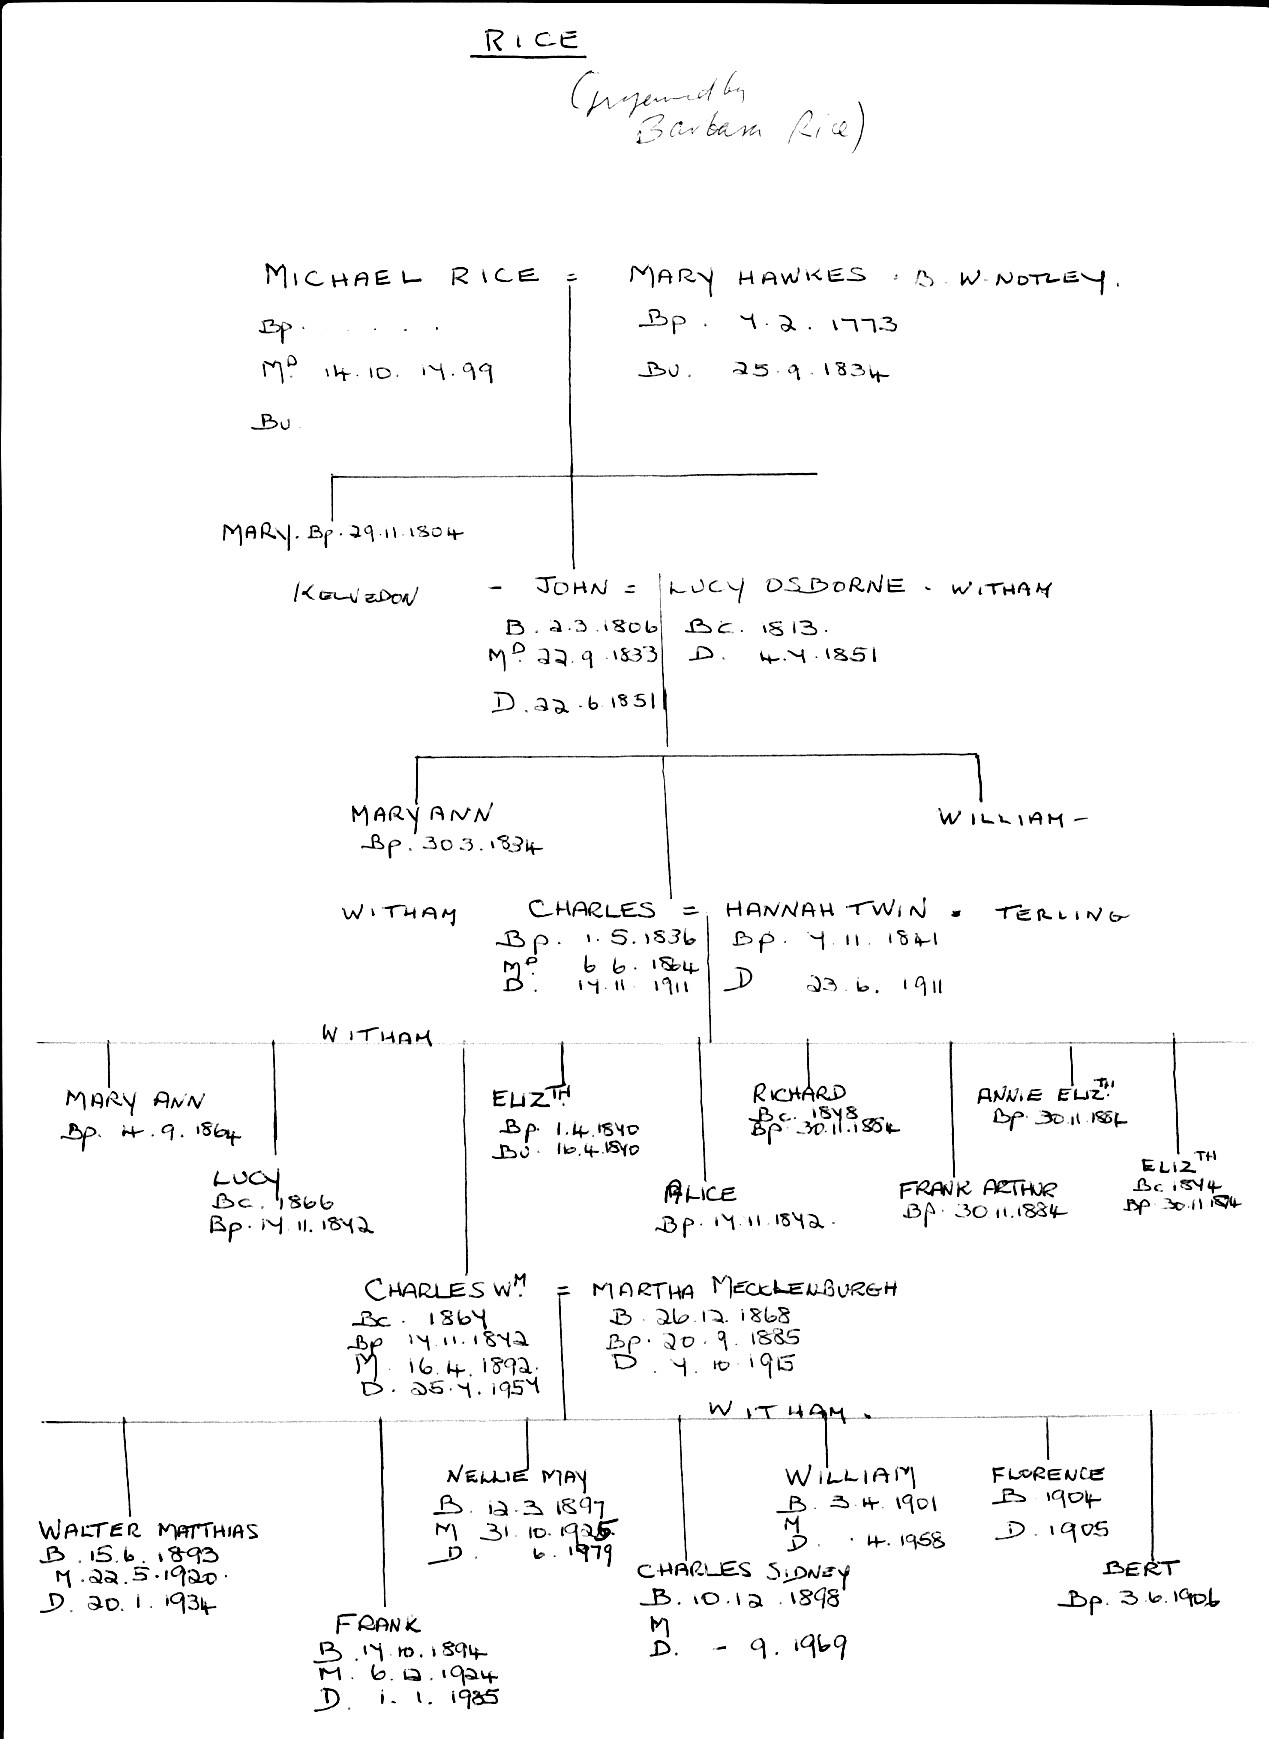 Rice family tree. Barbara's father was Walter (bottom left)